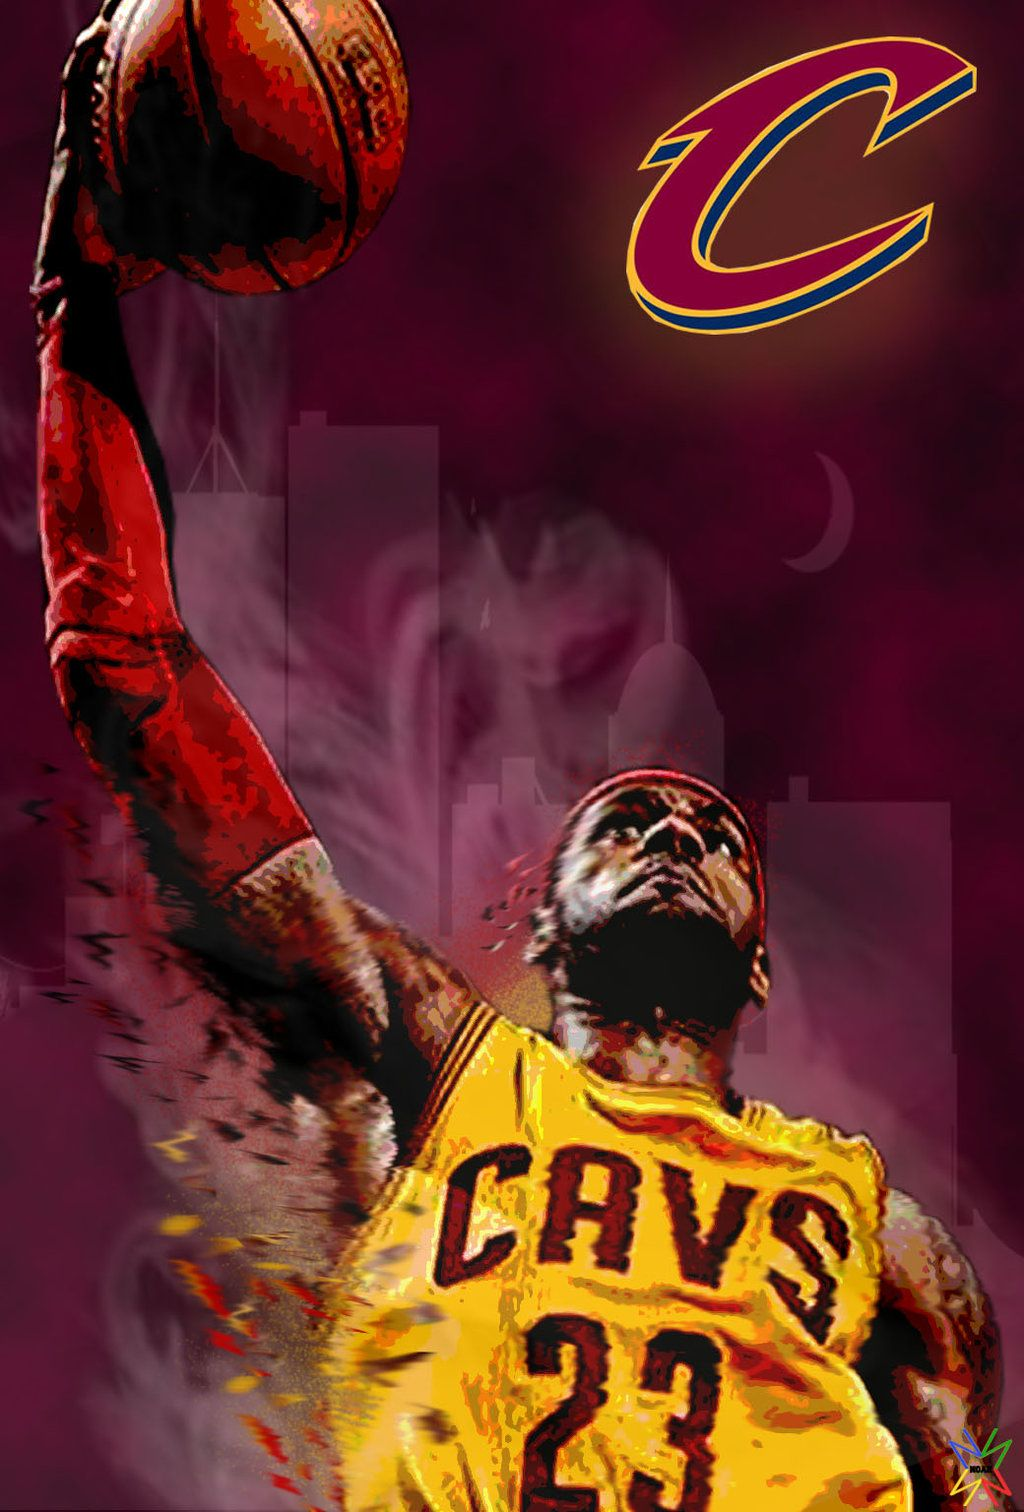 lebron_james_cavs_iphone_wallpaper_by_noahnelsed897wqm